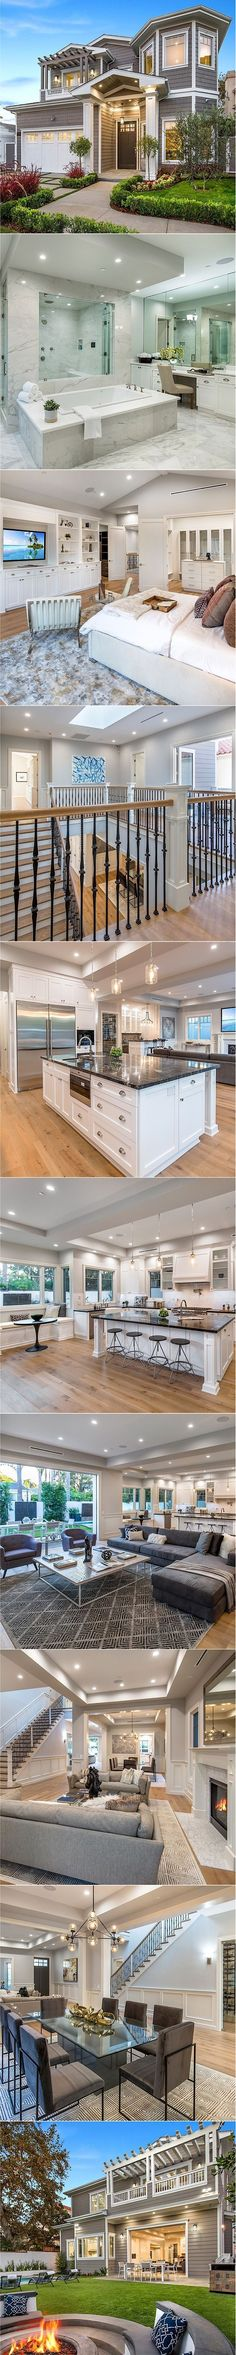 Stunning brand new Traditional in a highly desirable area of Brentwood with an abundance of new homes. Space, Volume & amenities are evident as you enter the home. Living room opens to an office overlooking the front yard. Formal dining room is flanked by French doors & opens to a water element on one side […]